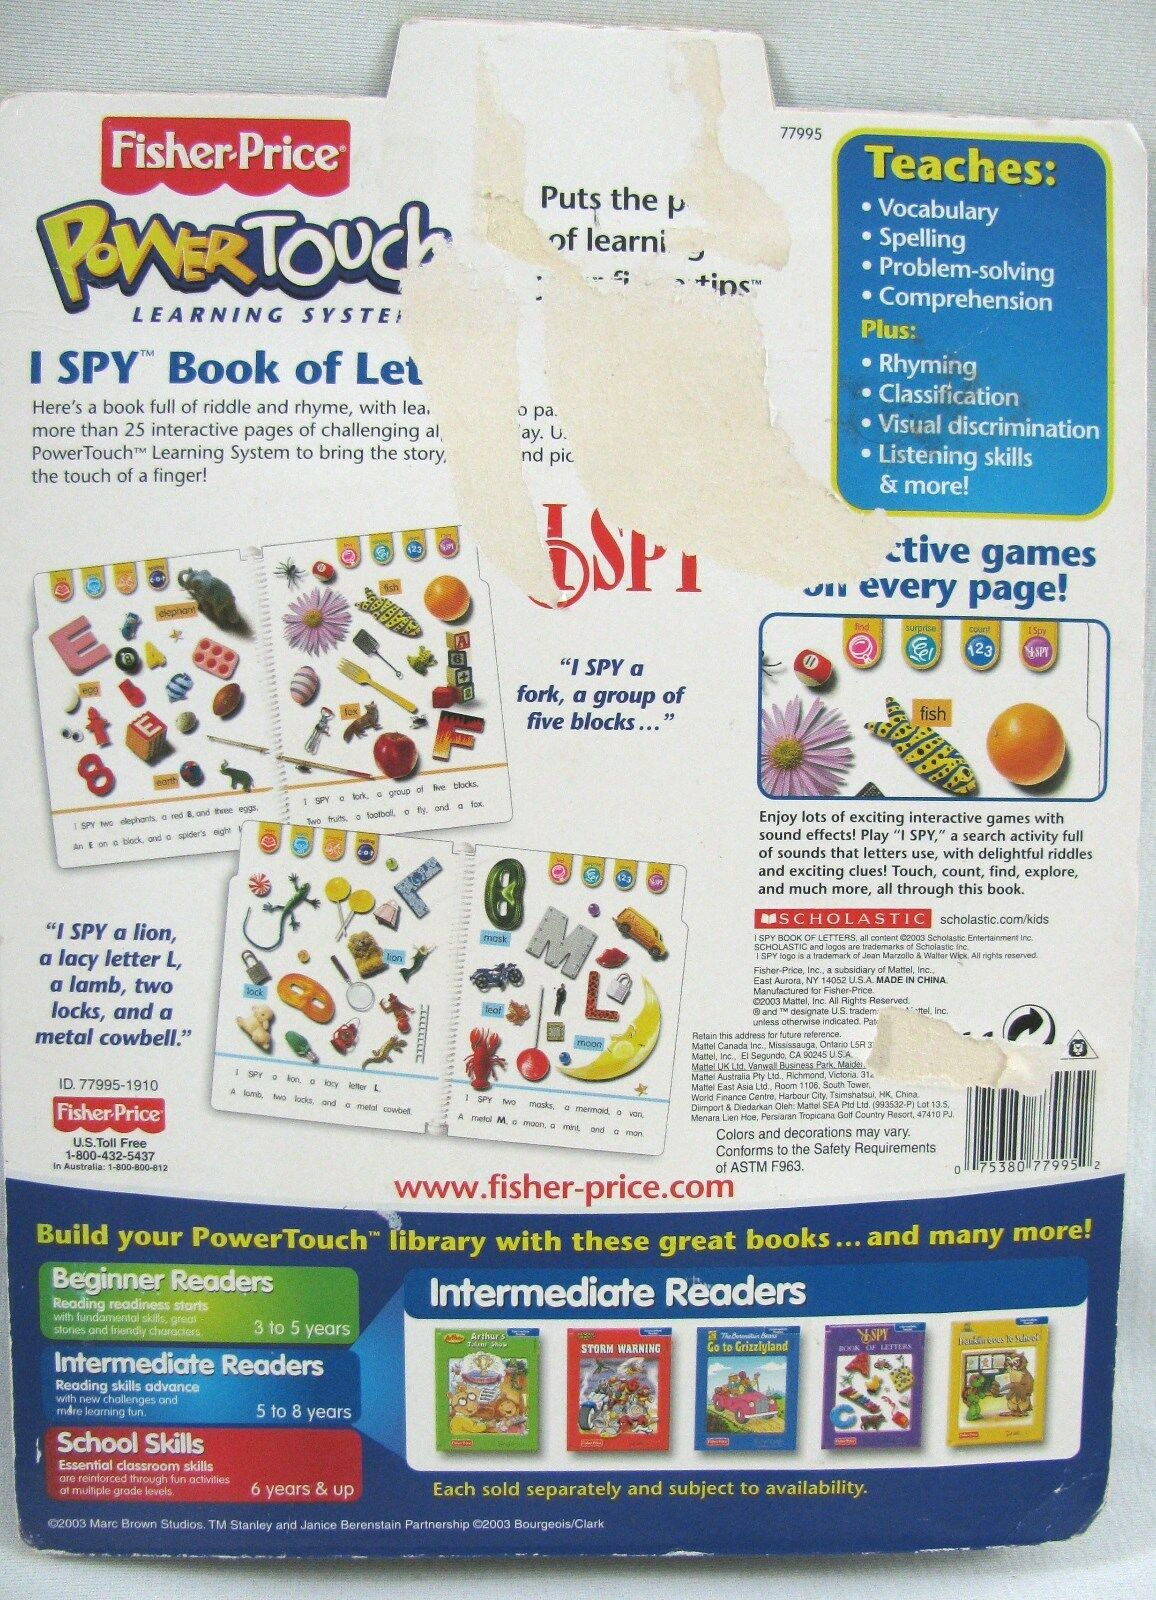 Fisher PowerTouch Learning System- I Spy Book of Letters